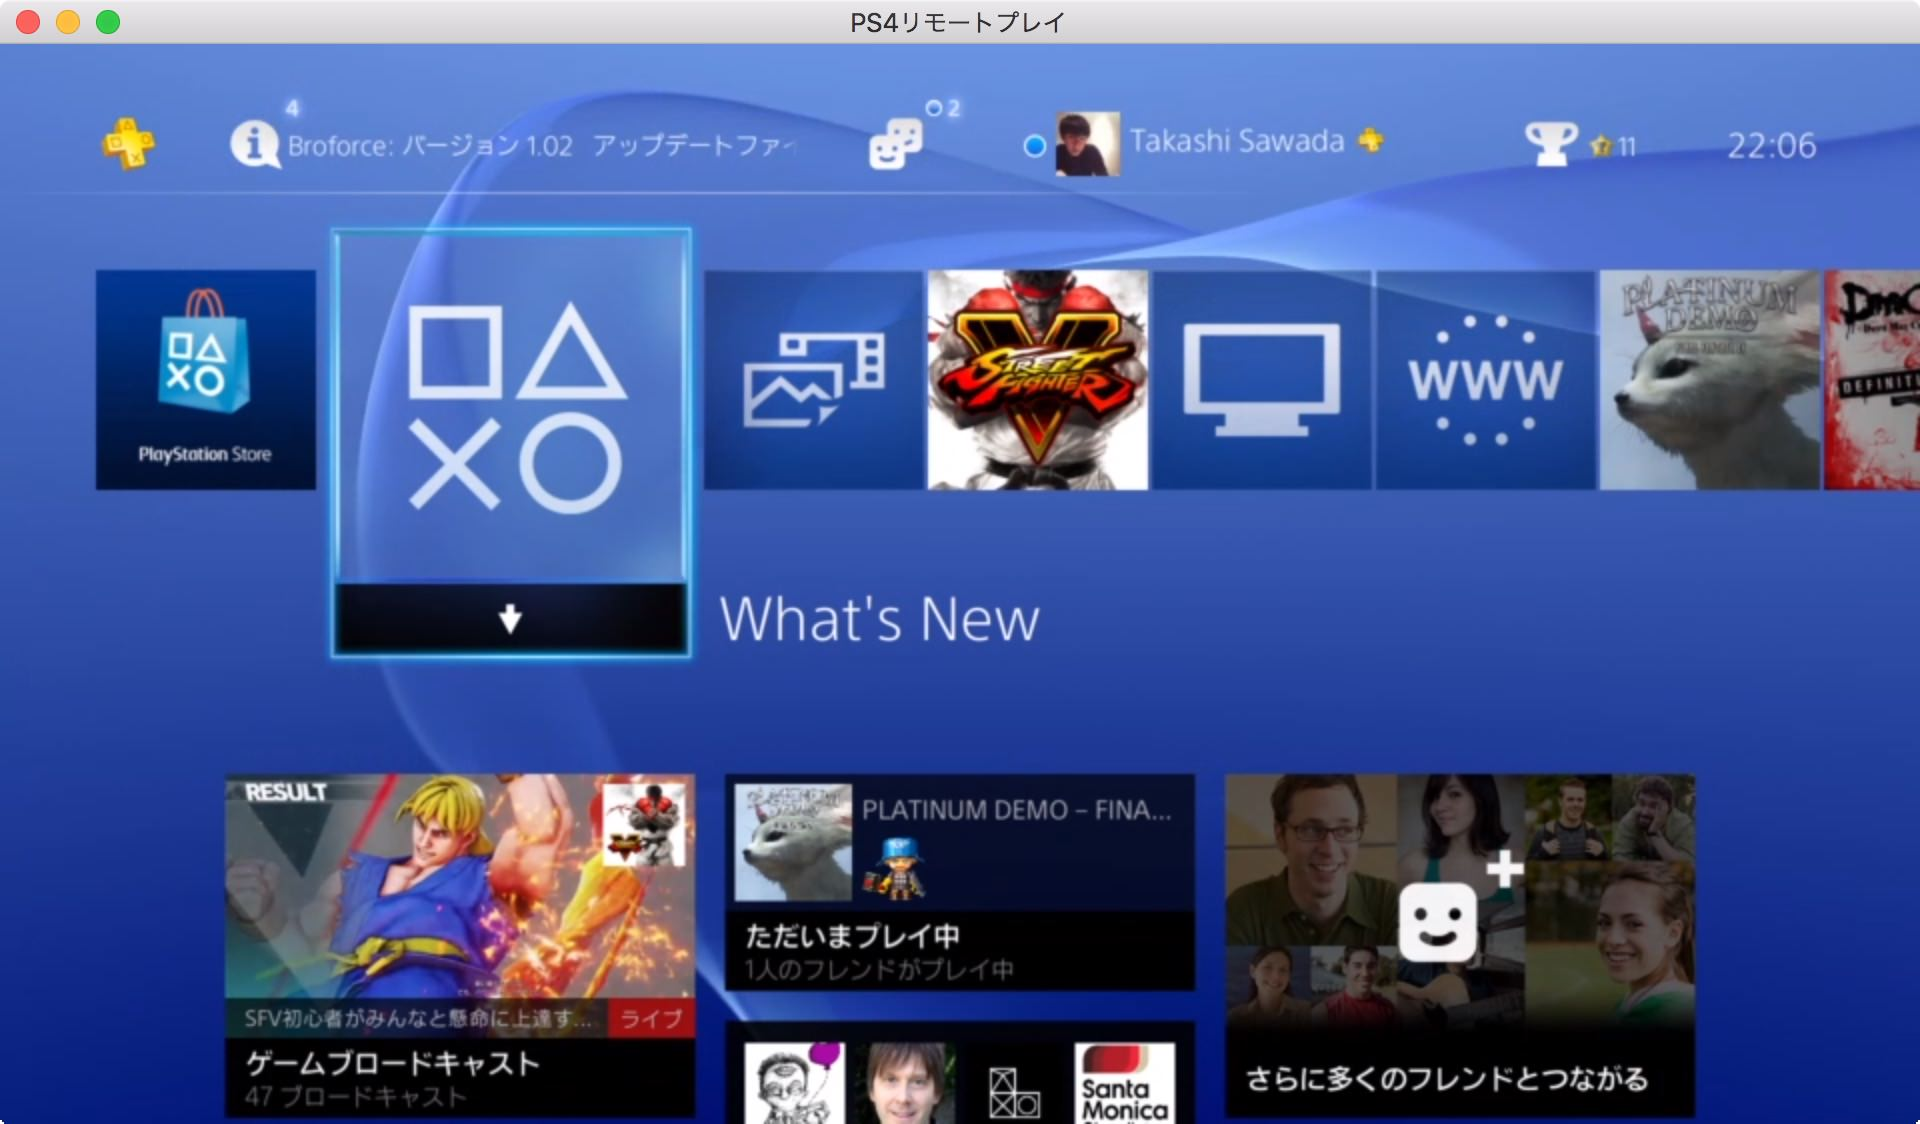 How to play playstation 4 game by remoto play from pc 10